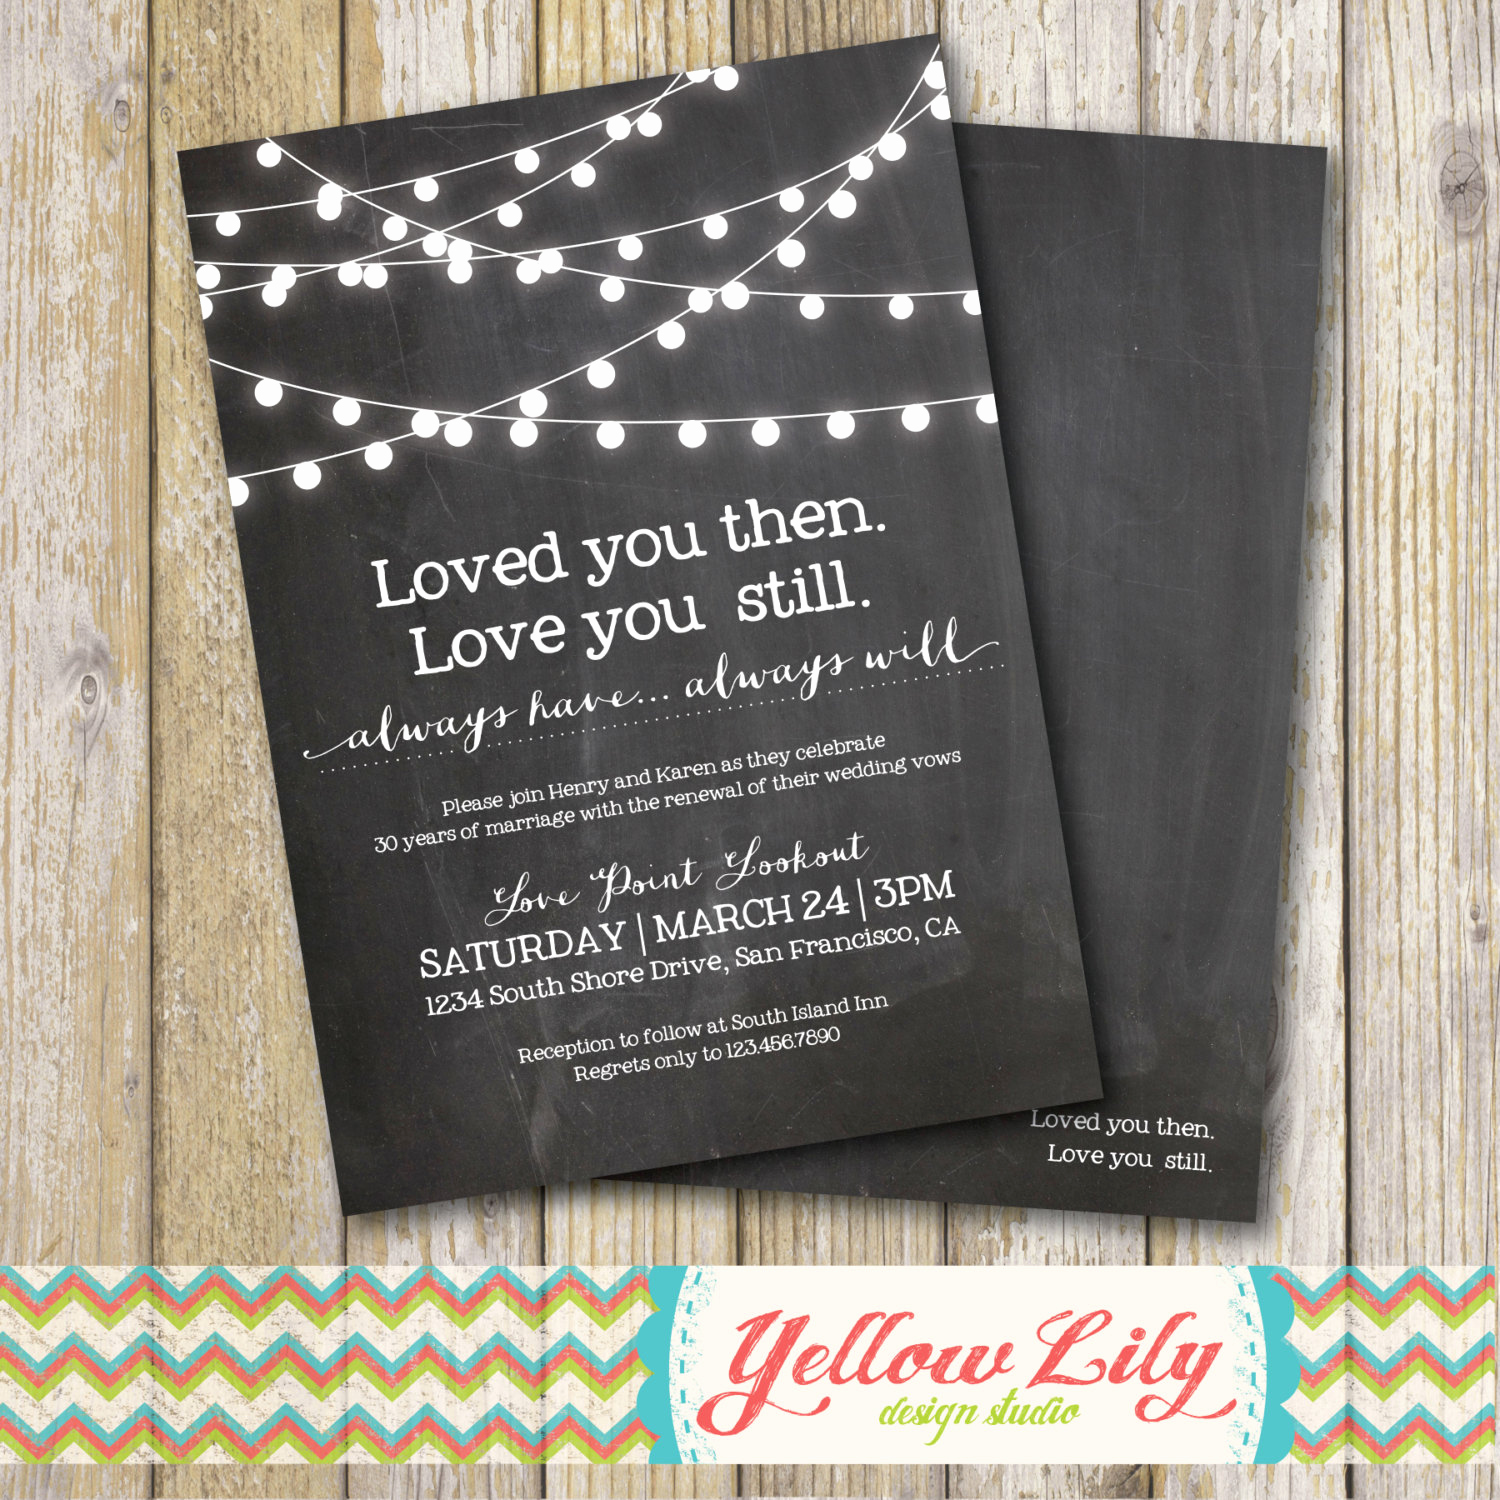 Vow Renewal Invitation Wording Inspirational Vow Renewal Invitation Chalkboard Vow Renewal Marriage